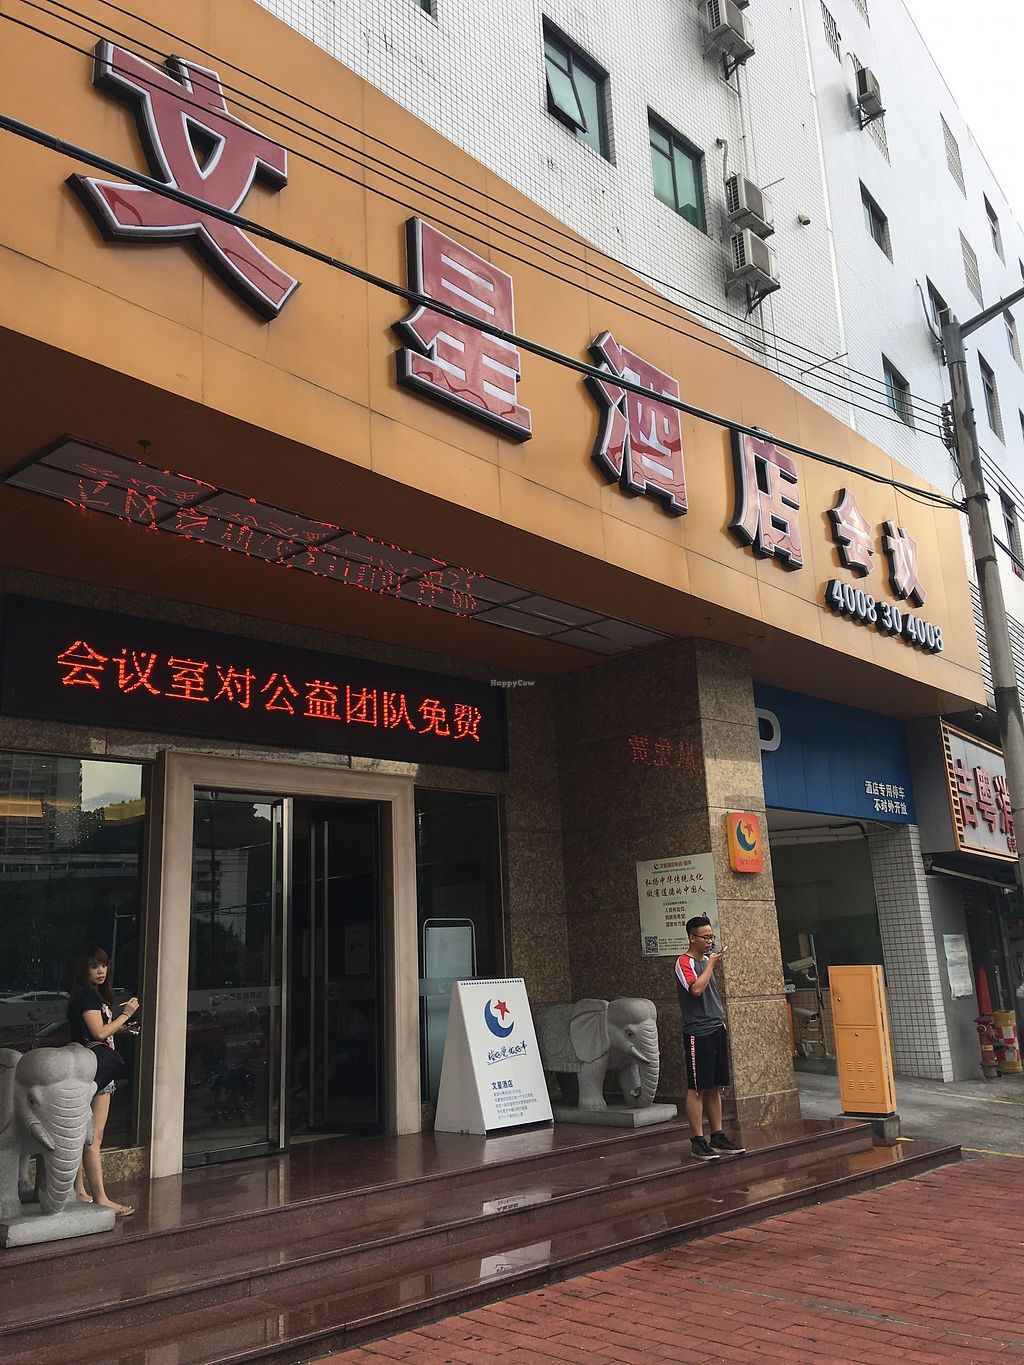 """Photo of Wen Xing Vegetarian - Shatai S Road  by <a href=""""/members/profile/Stevie"""">Stevie</a> <br/>Hotel entrance <br/> October 3, 2017  - <a href='/contact/abuse/image/56706/311388'>Report</a>"""